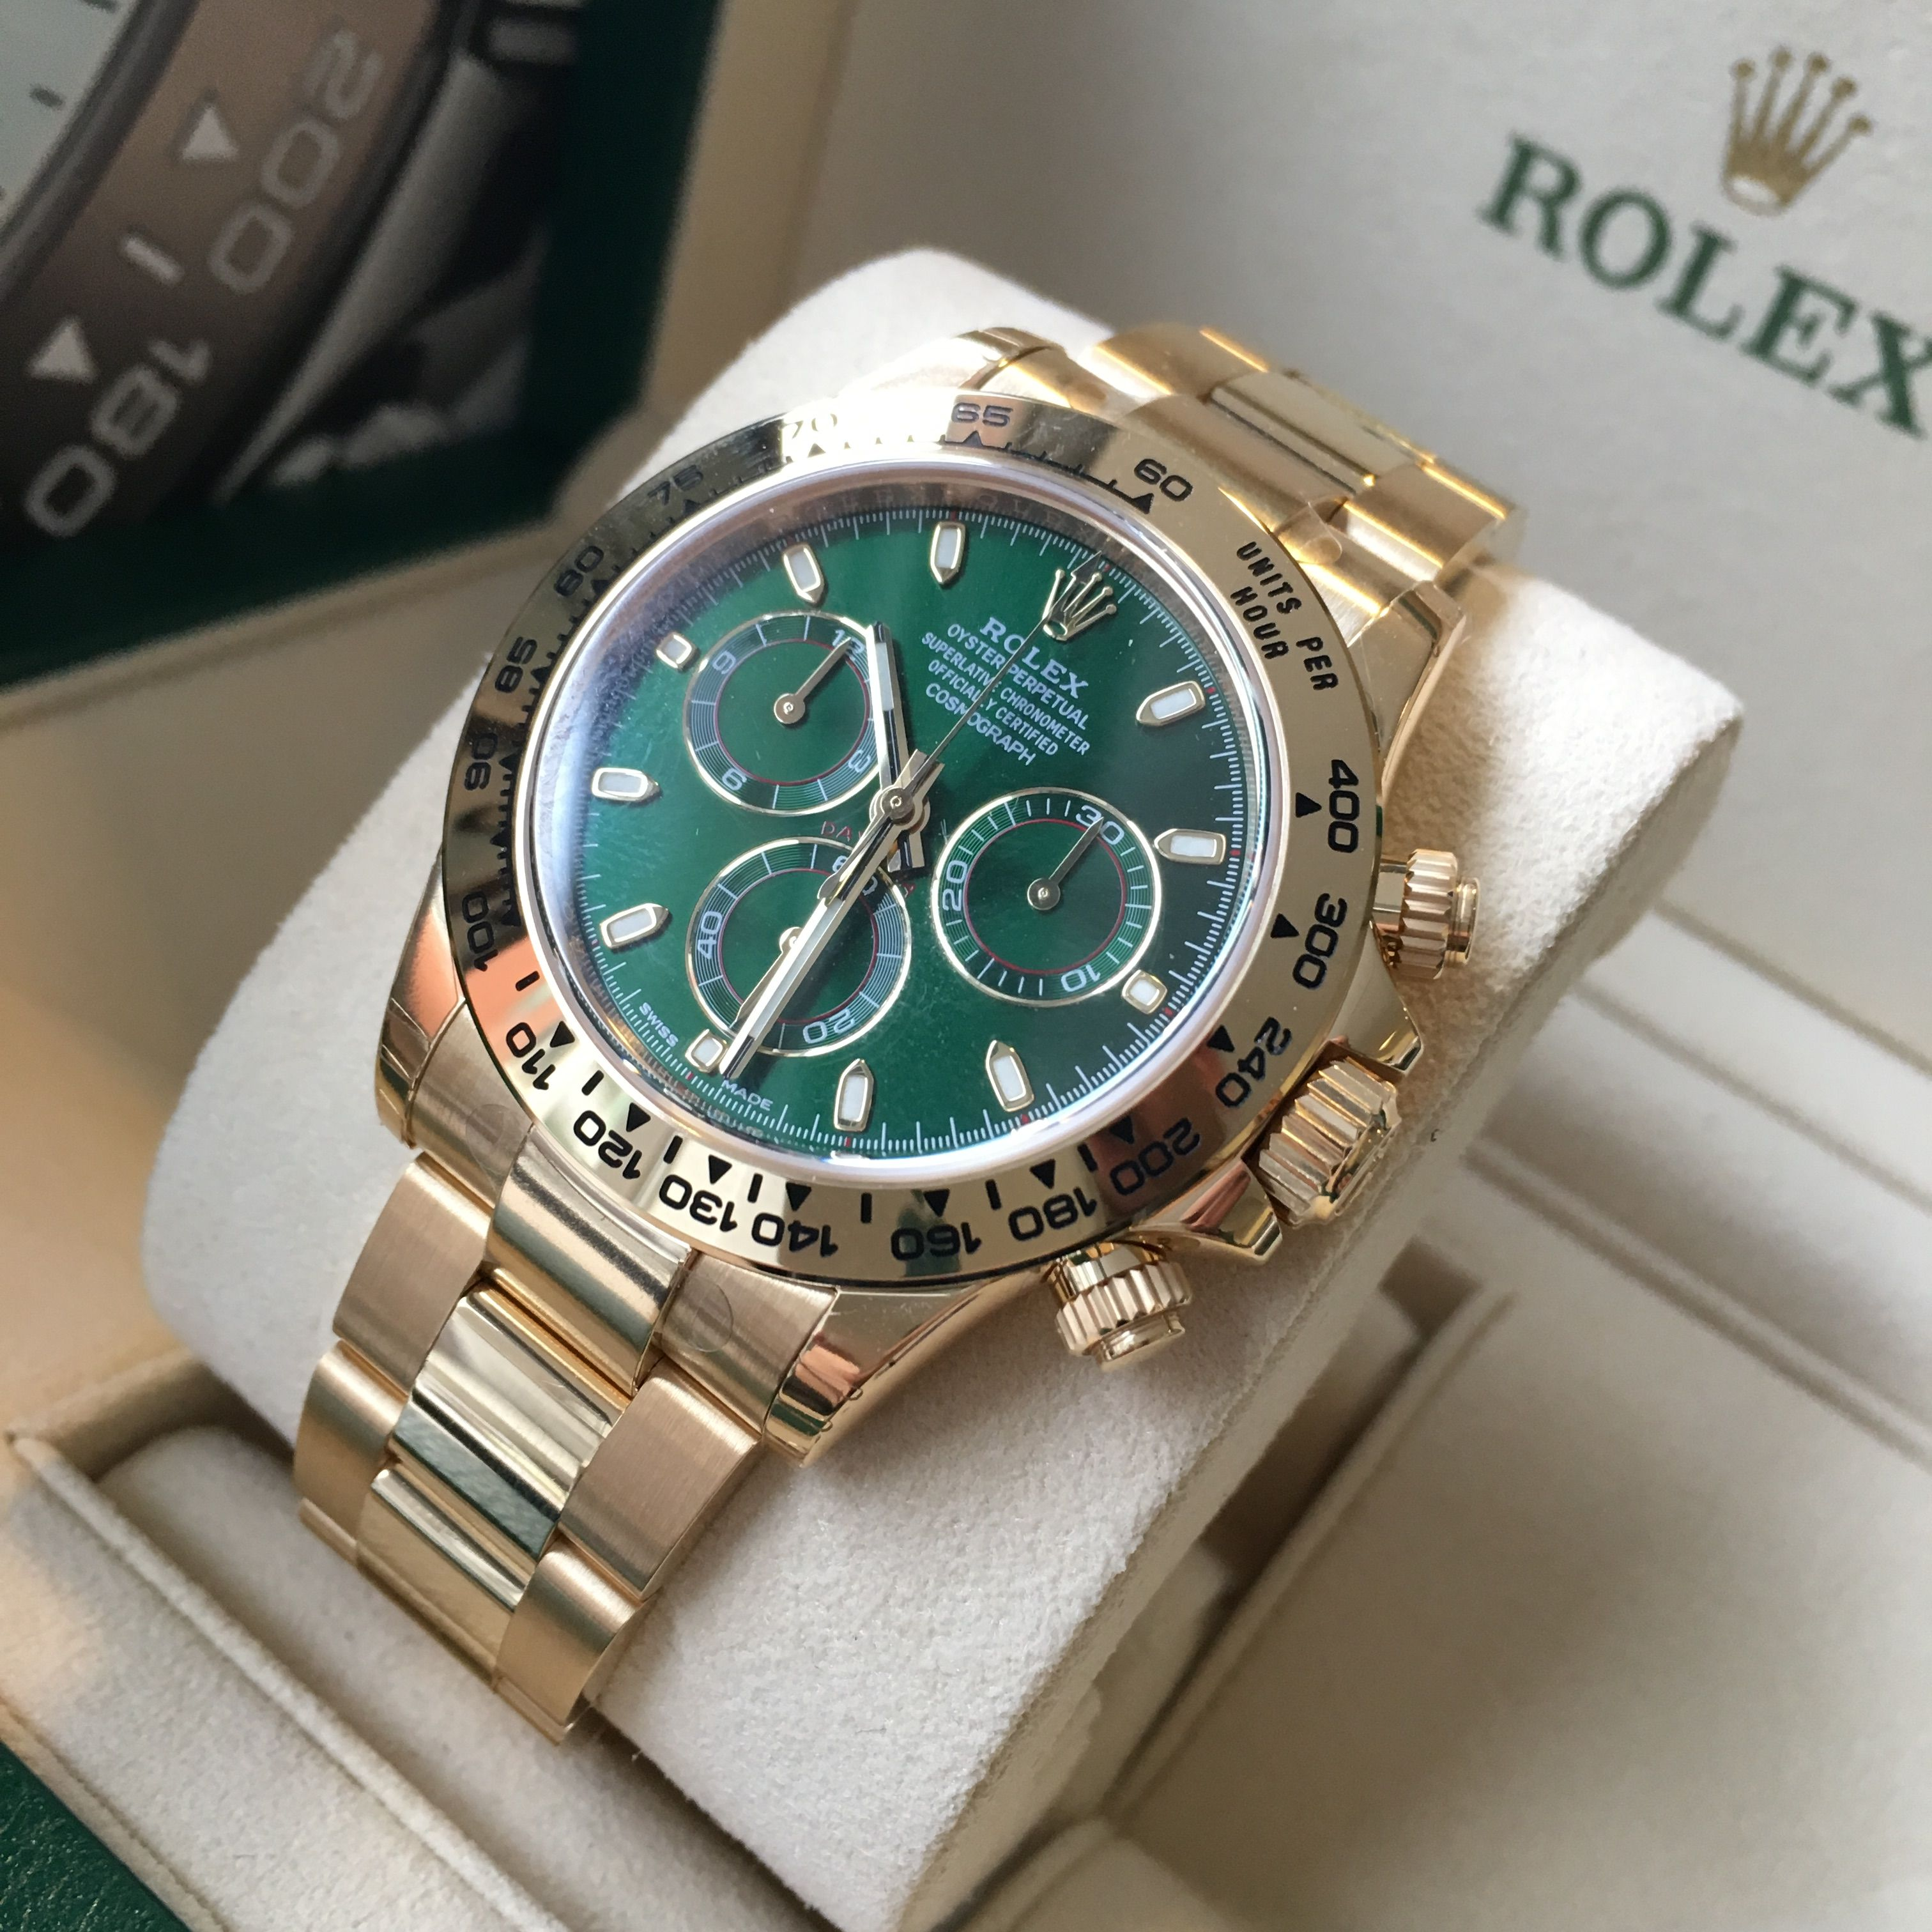 Special Price for this beauty hurry Rolex Daytona Yellow